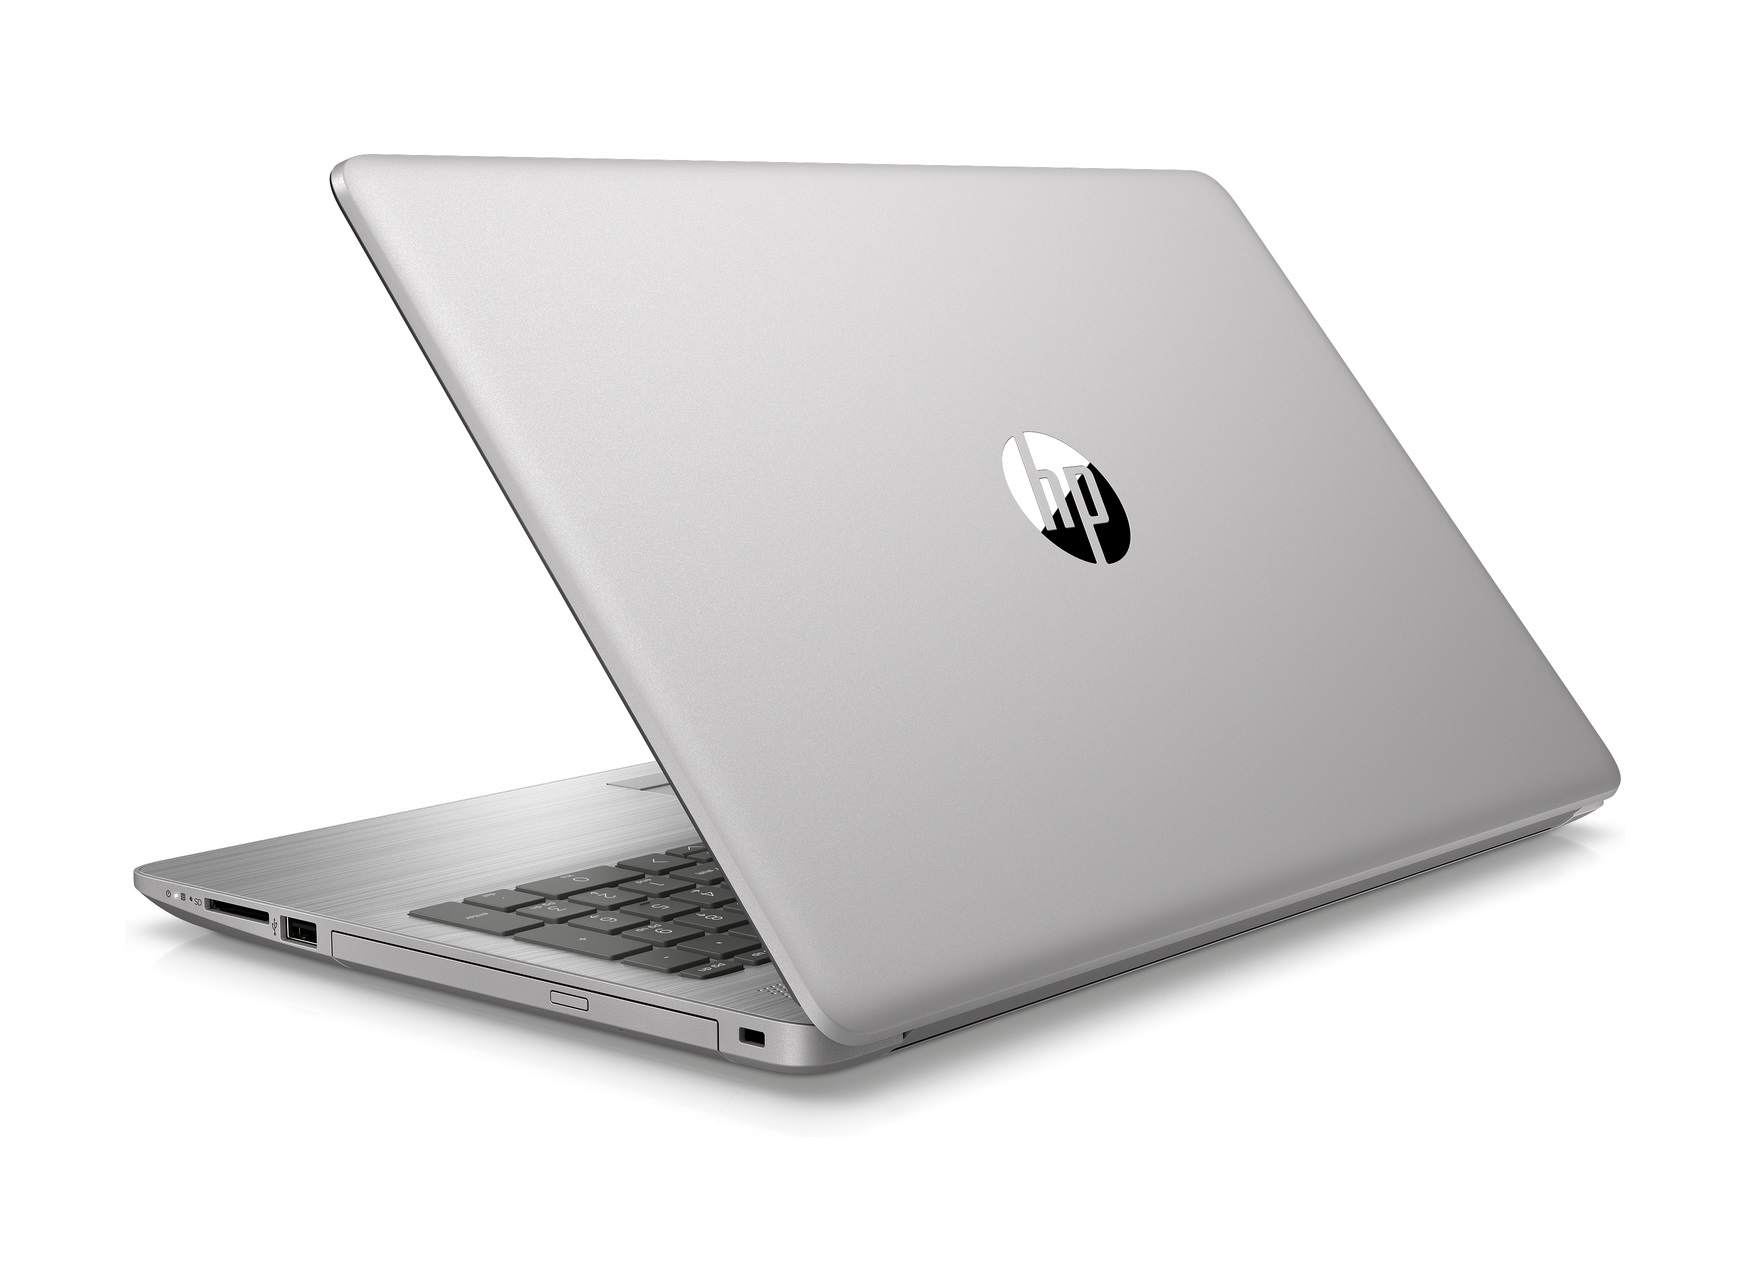 Ordinateur portable HP Probook 250 G7, Intel Core i5, 8 Go DDR4, SSD 256 Go, 15,6 pouces, W10 64bits, informatique Reunion 974, Futur Réunion informatique